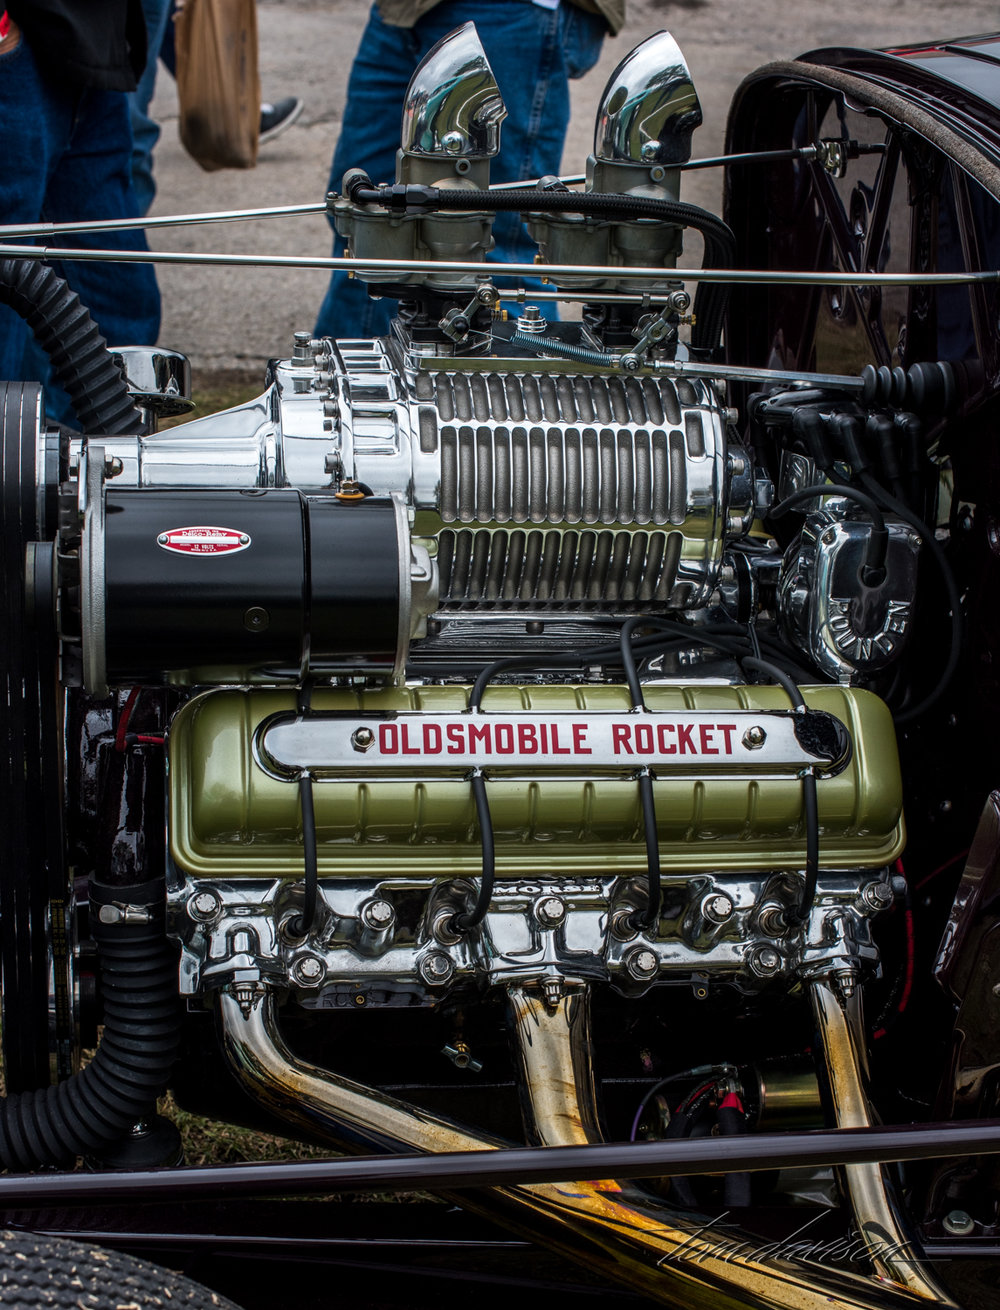 Supercharged Oldsmobile engine